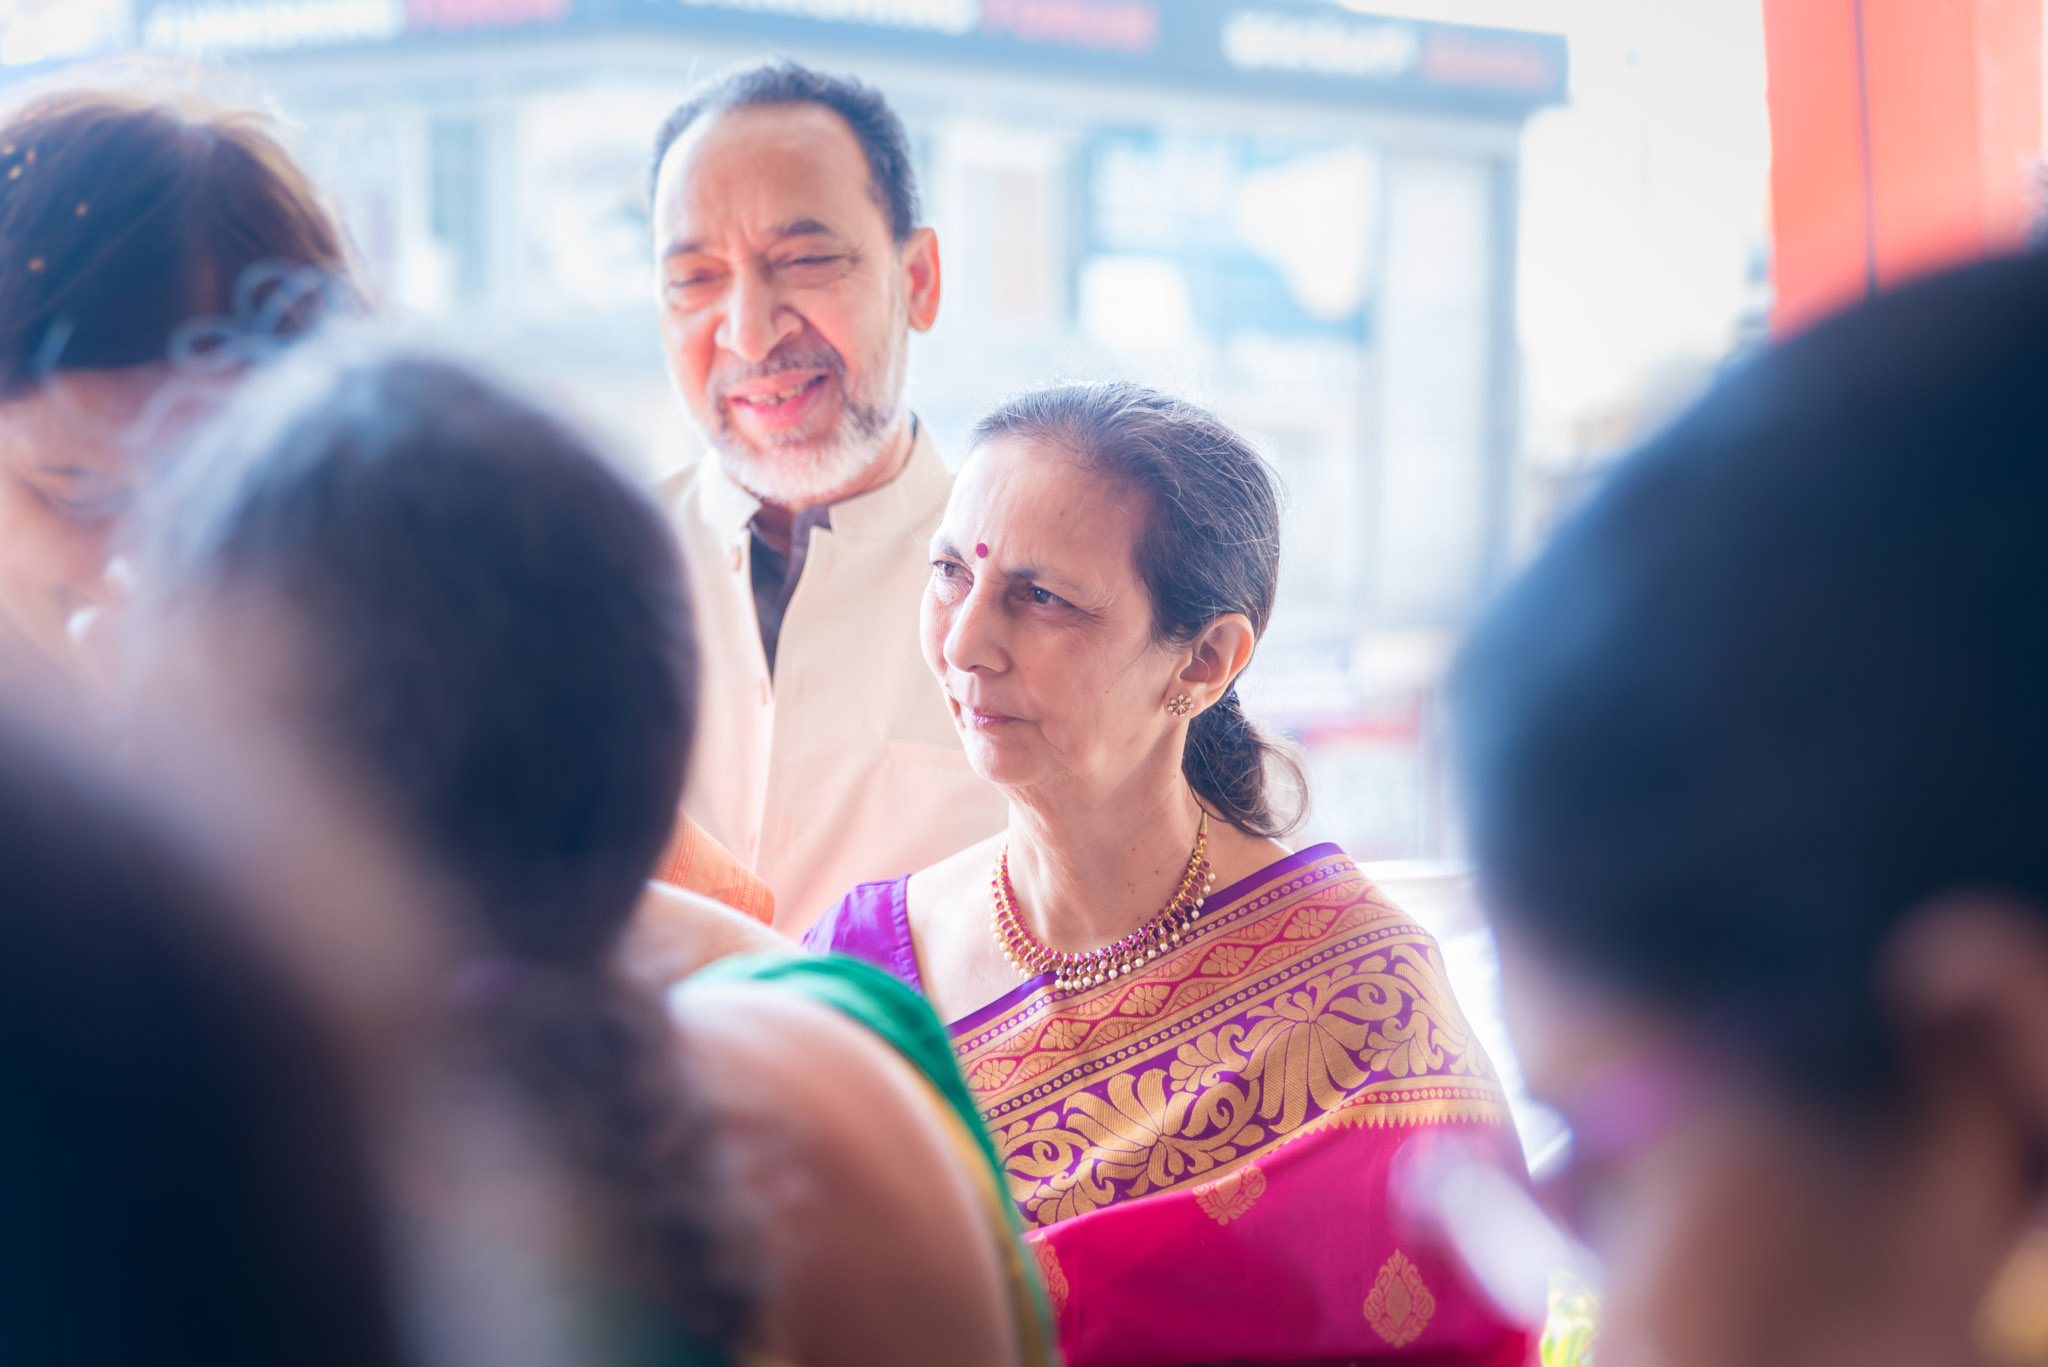 WhatKnot-Candid-Wedding-Photography-Mumbai-Bangalore-137